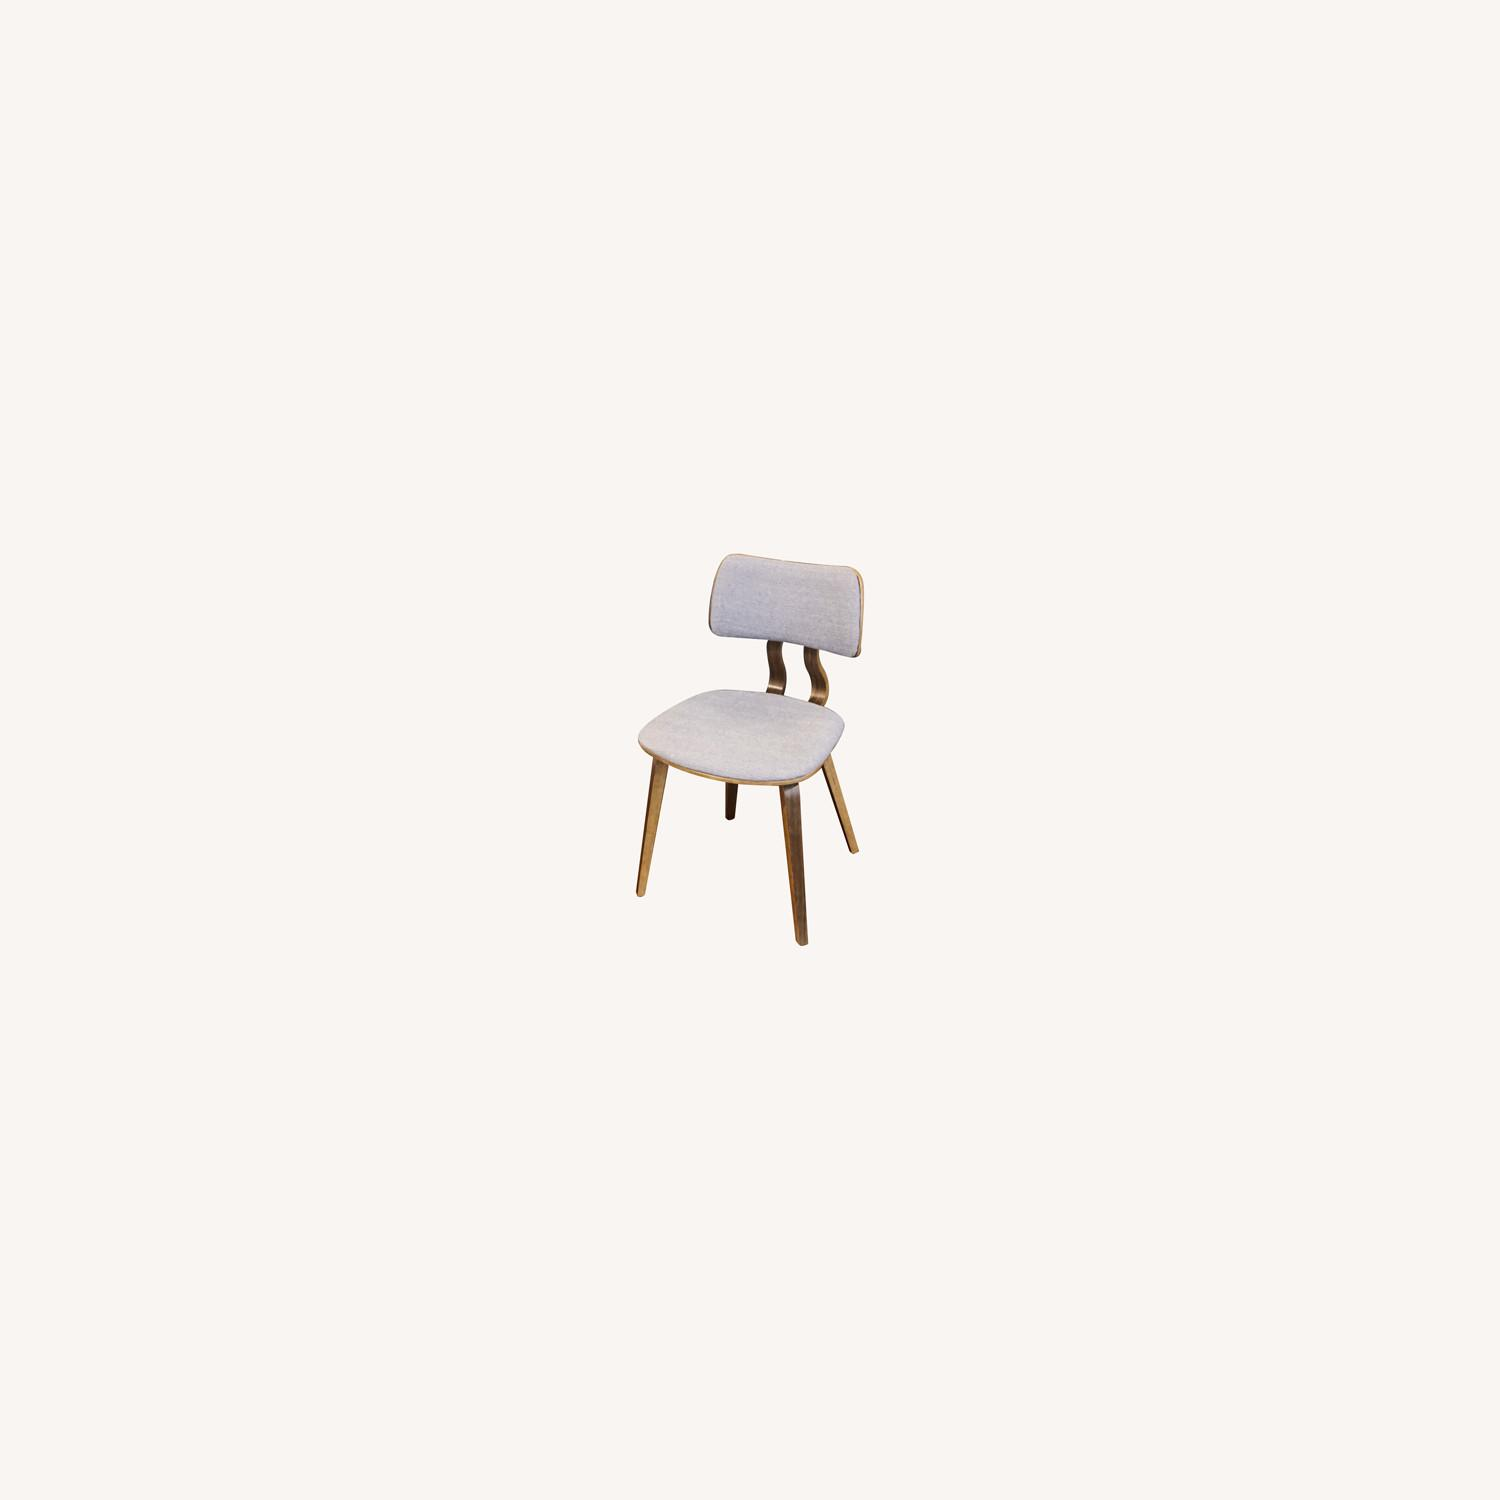 Wayfair Caswell Upholstered Side Chair - image-0